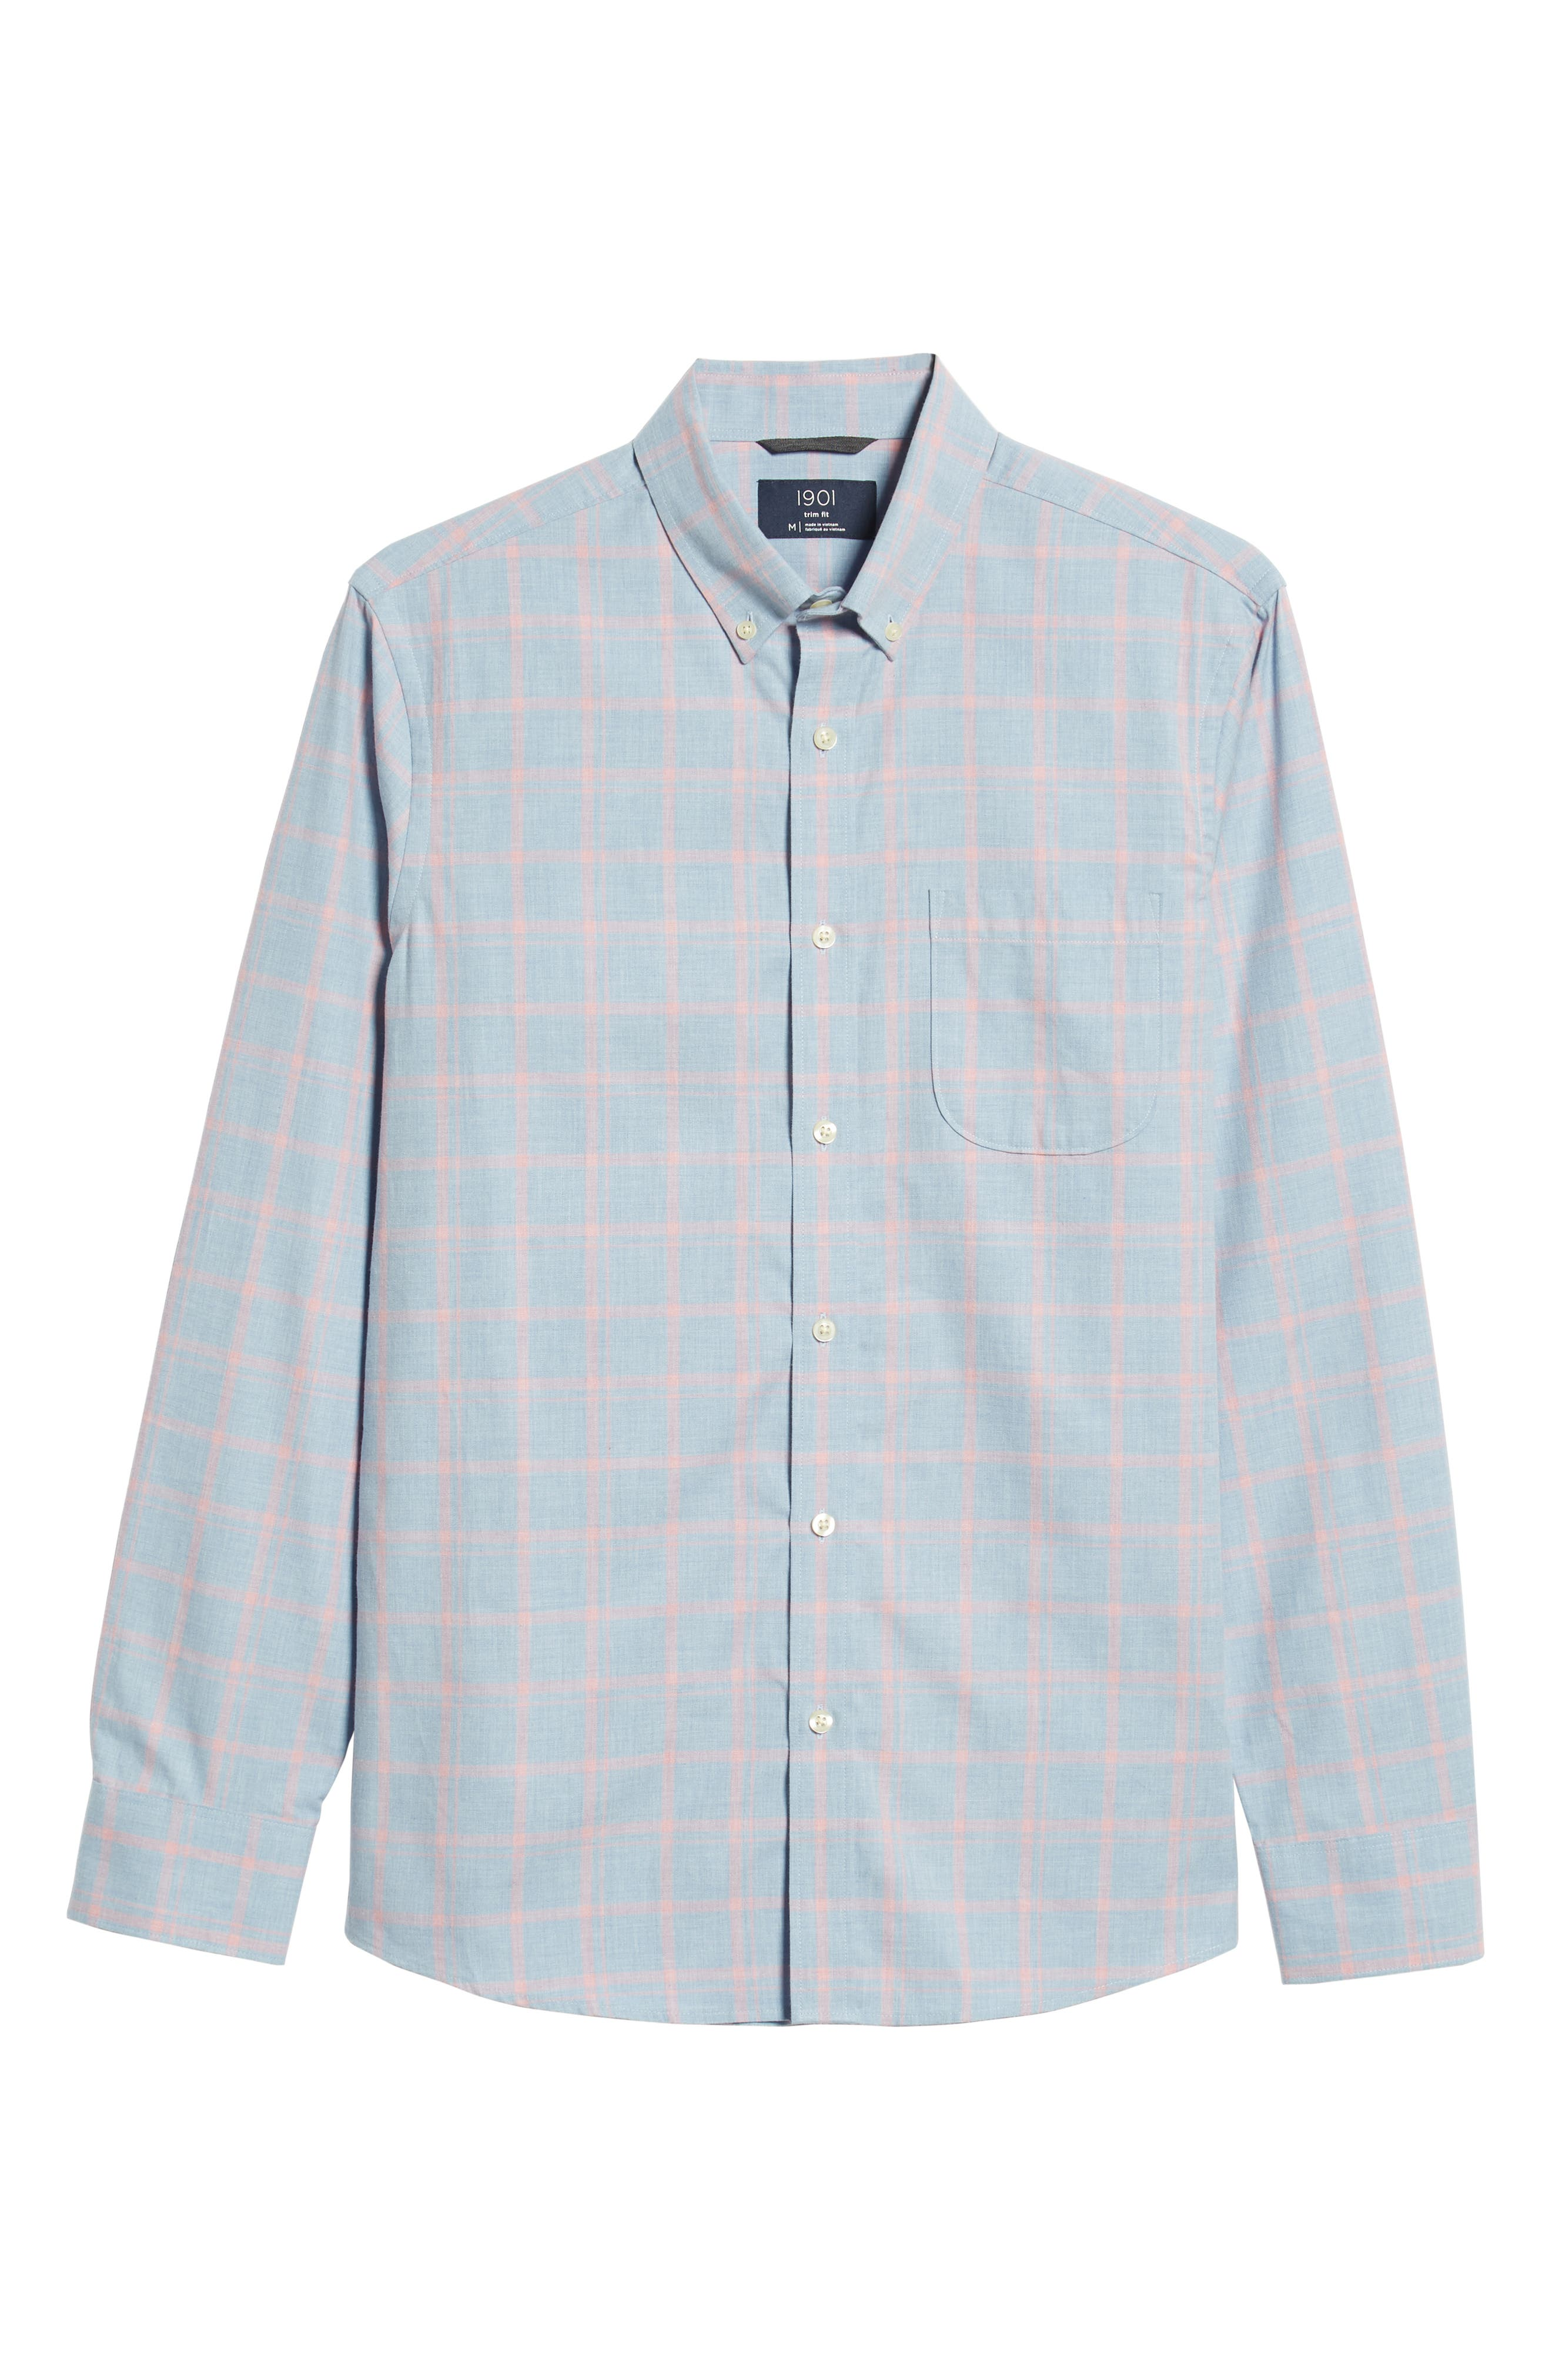 Slim Fit Chambray Sport Shirt,                             Alternate thumbnail 5, color,                             450